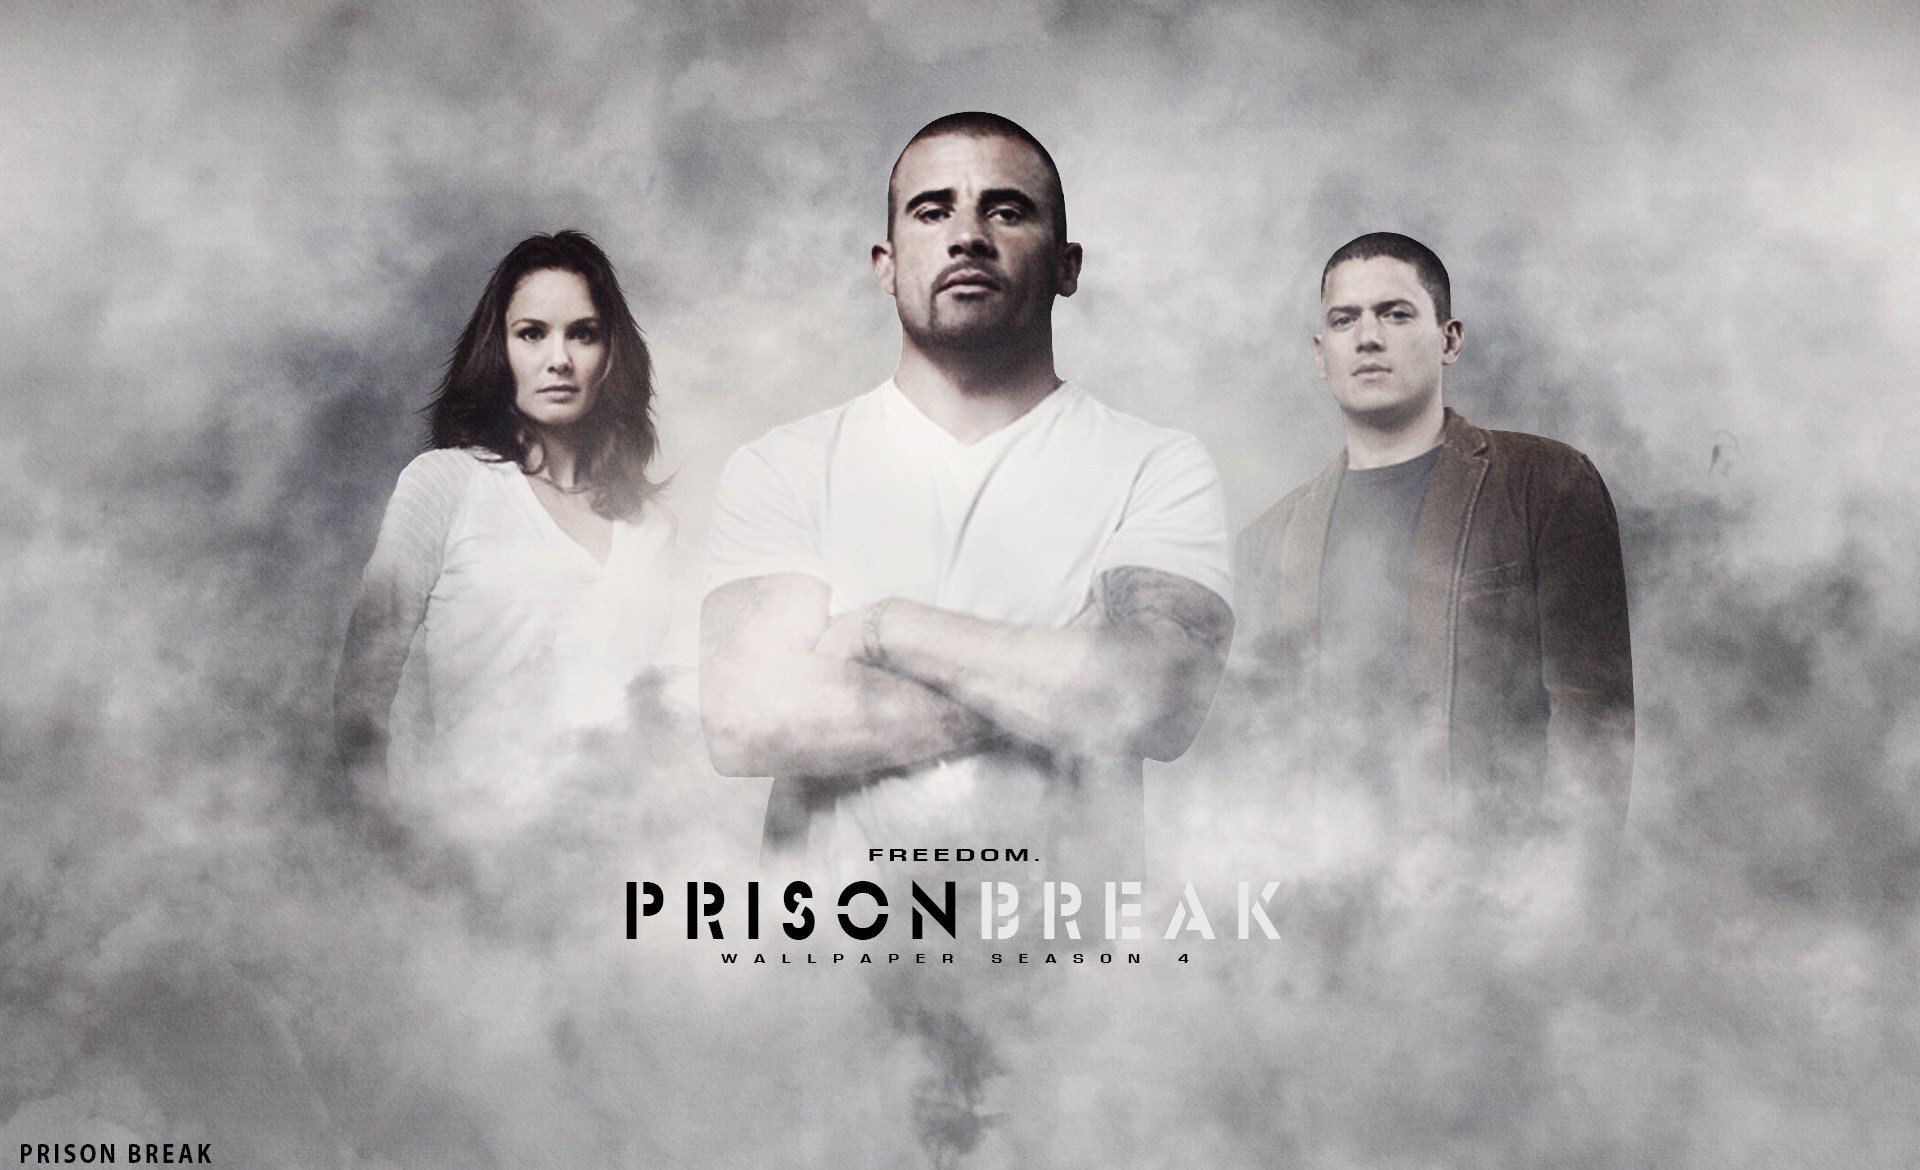 1000+ images about Prison Break HD Wallpapers on Pinterest | Seasons,  Gandhi and Search